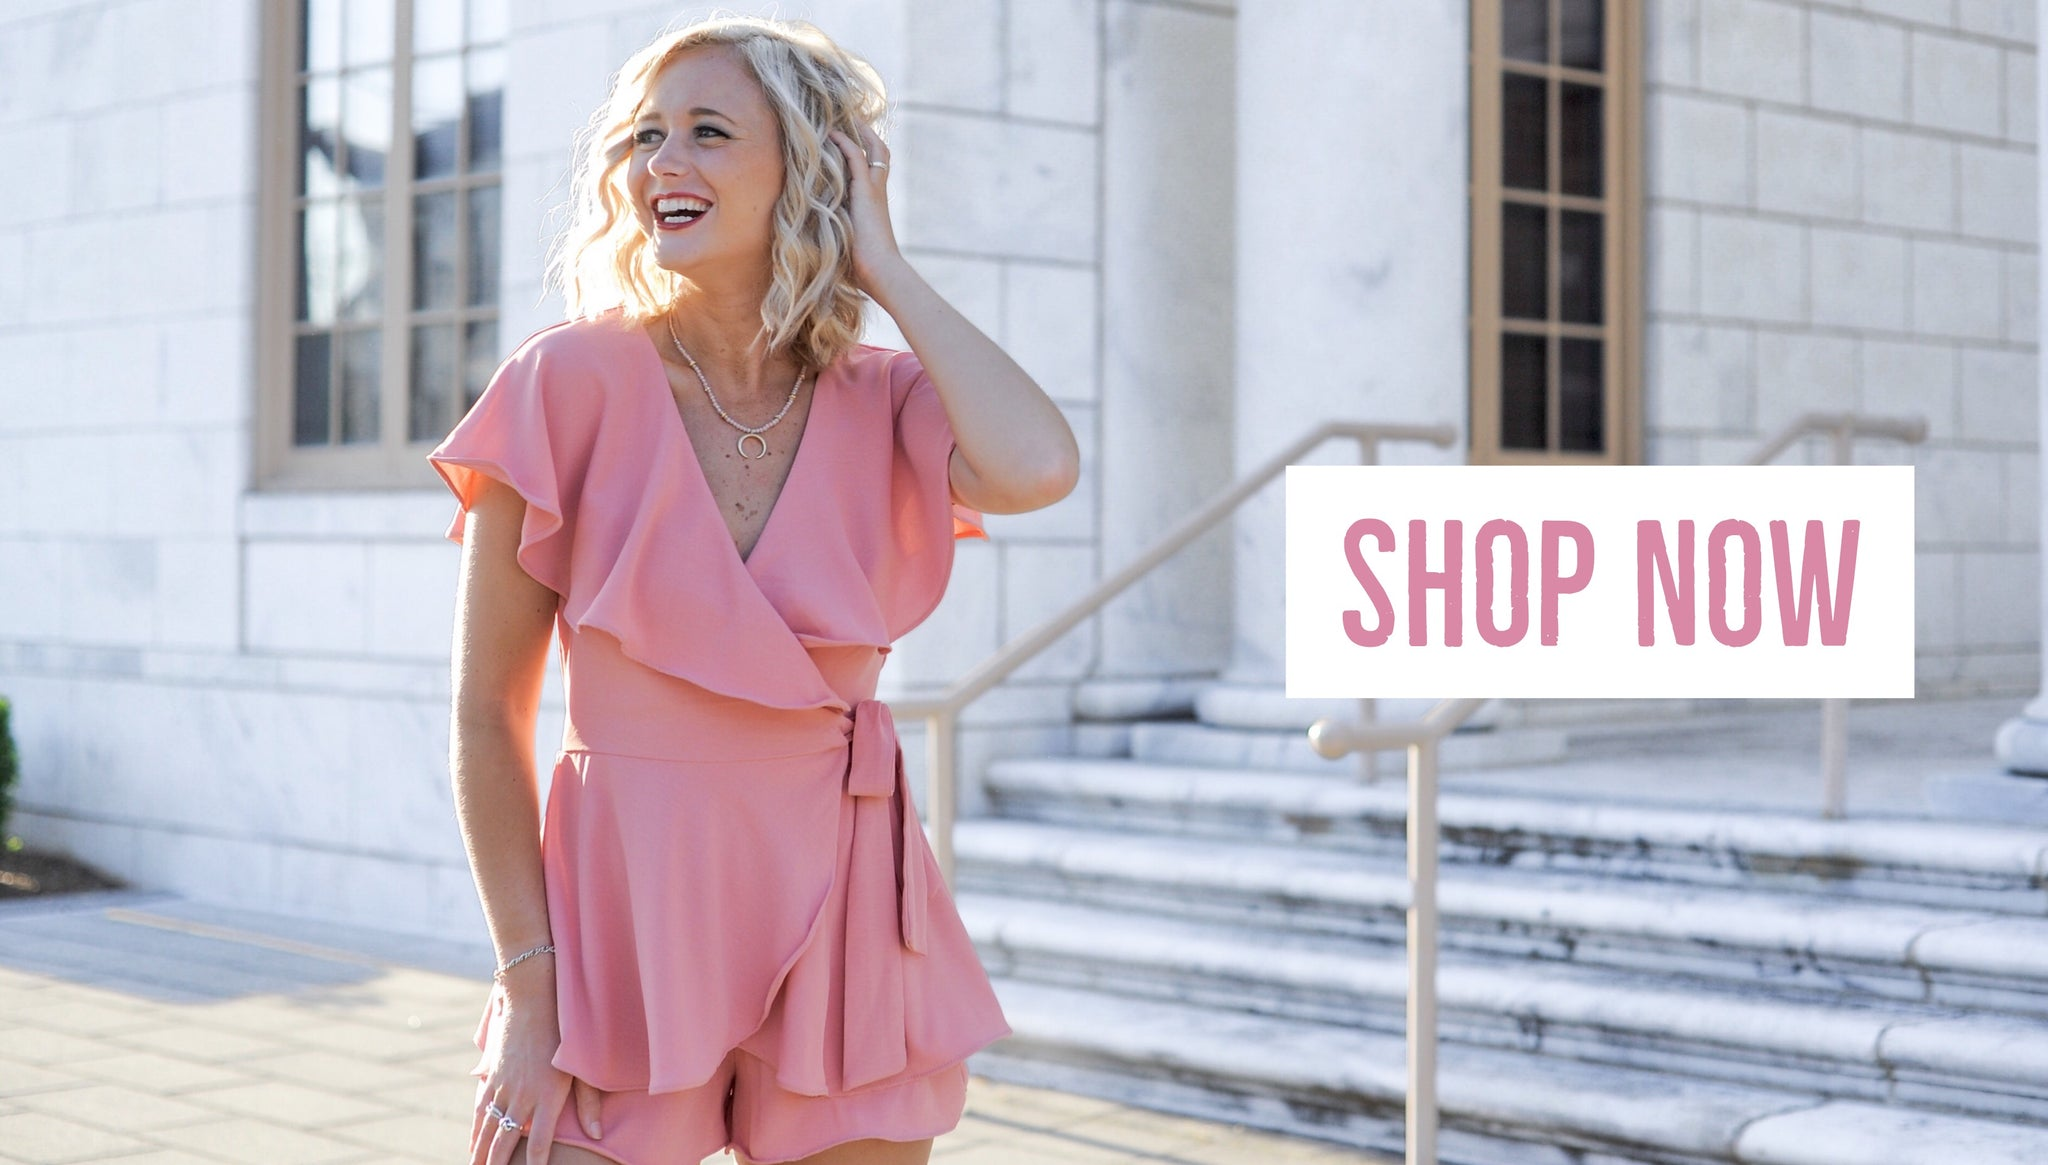 Shop Women's Clothing | Trendy Online Boutique | Leap of Faith